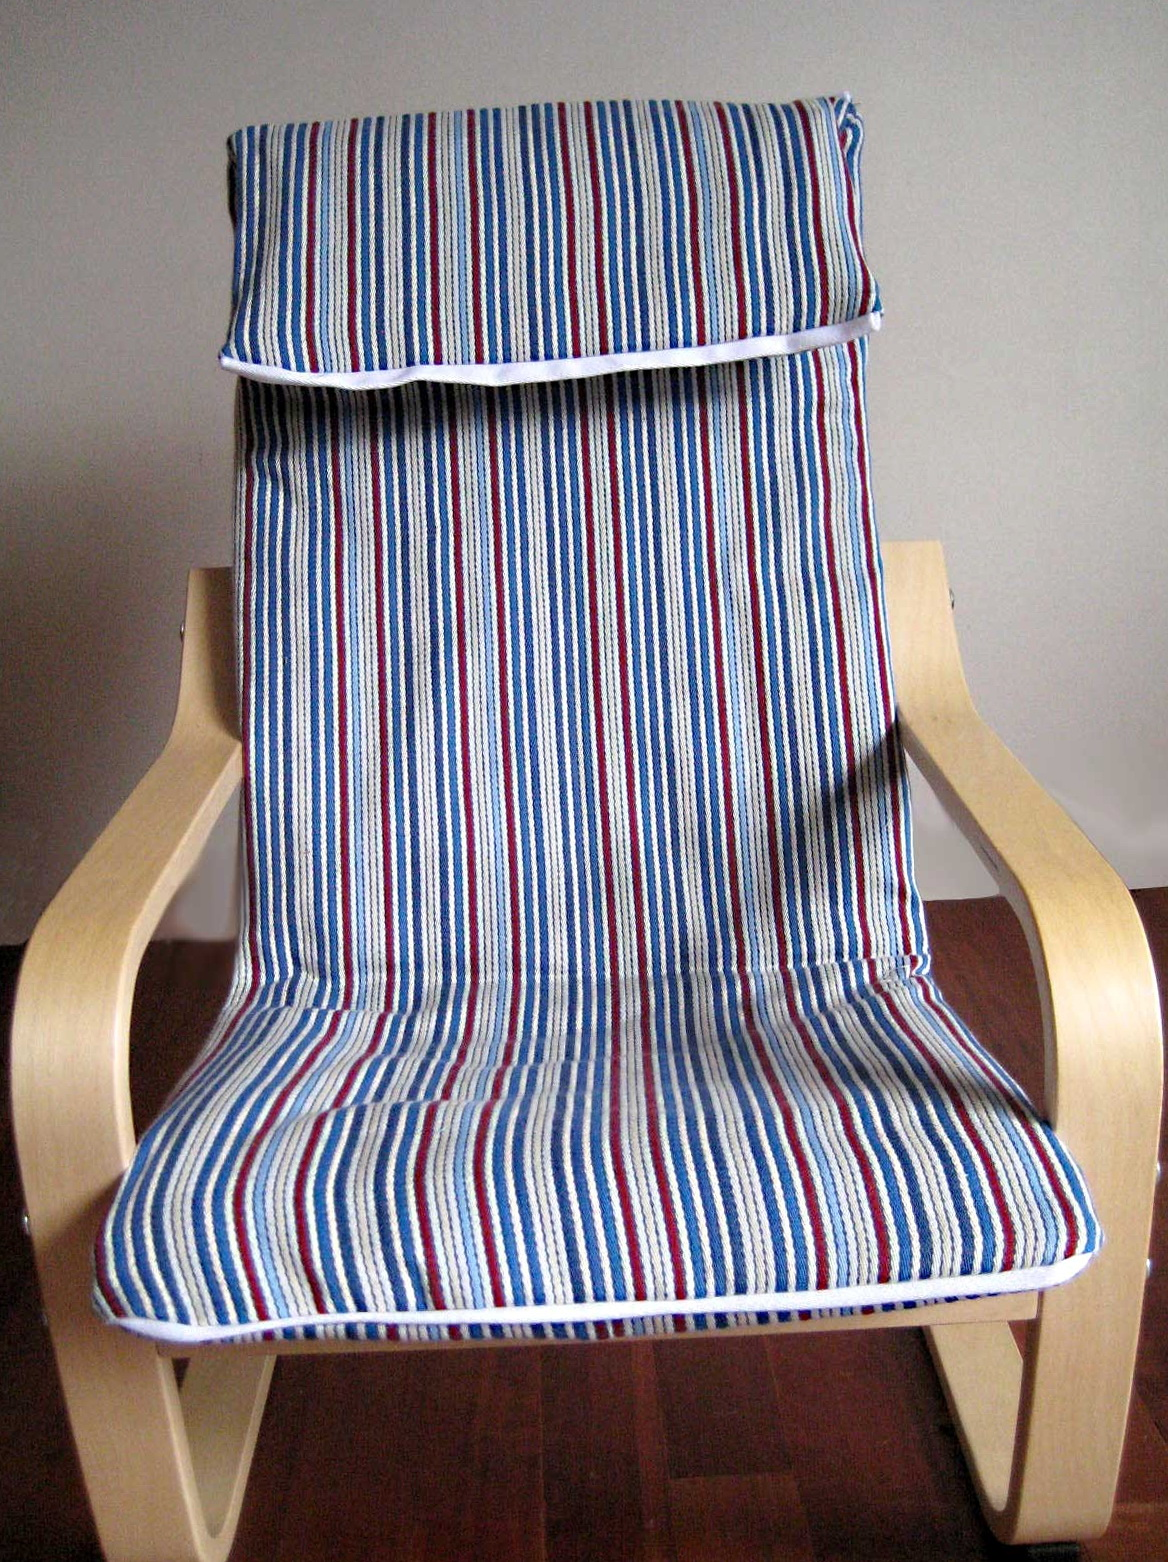 ikea poang chair covers uk farmhouse chairs for sale cushion replacement home design ideas